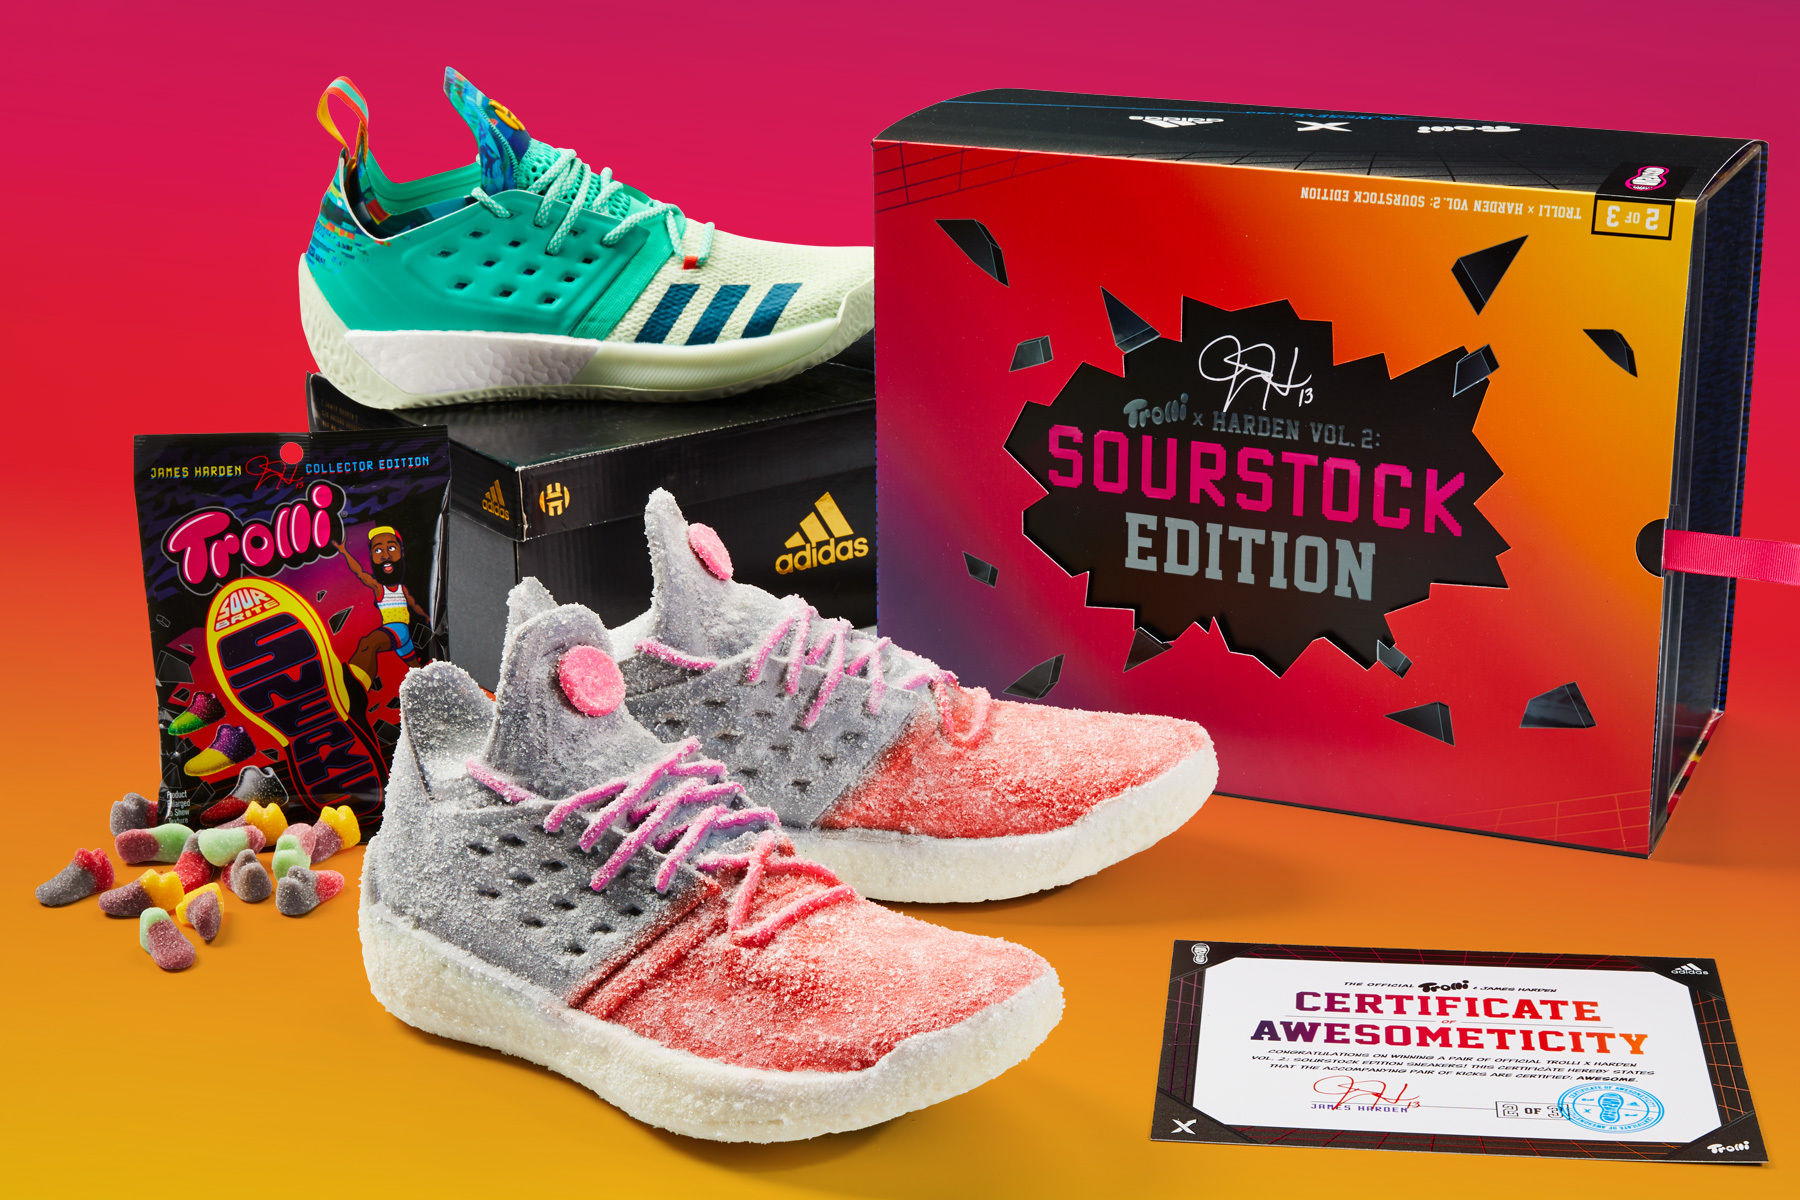 Trollisoursneaks stockx collection qoxjnc